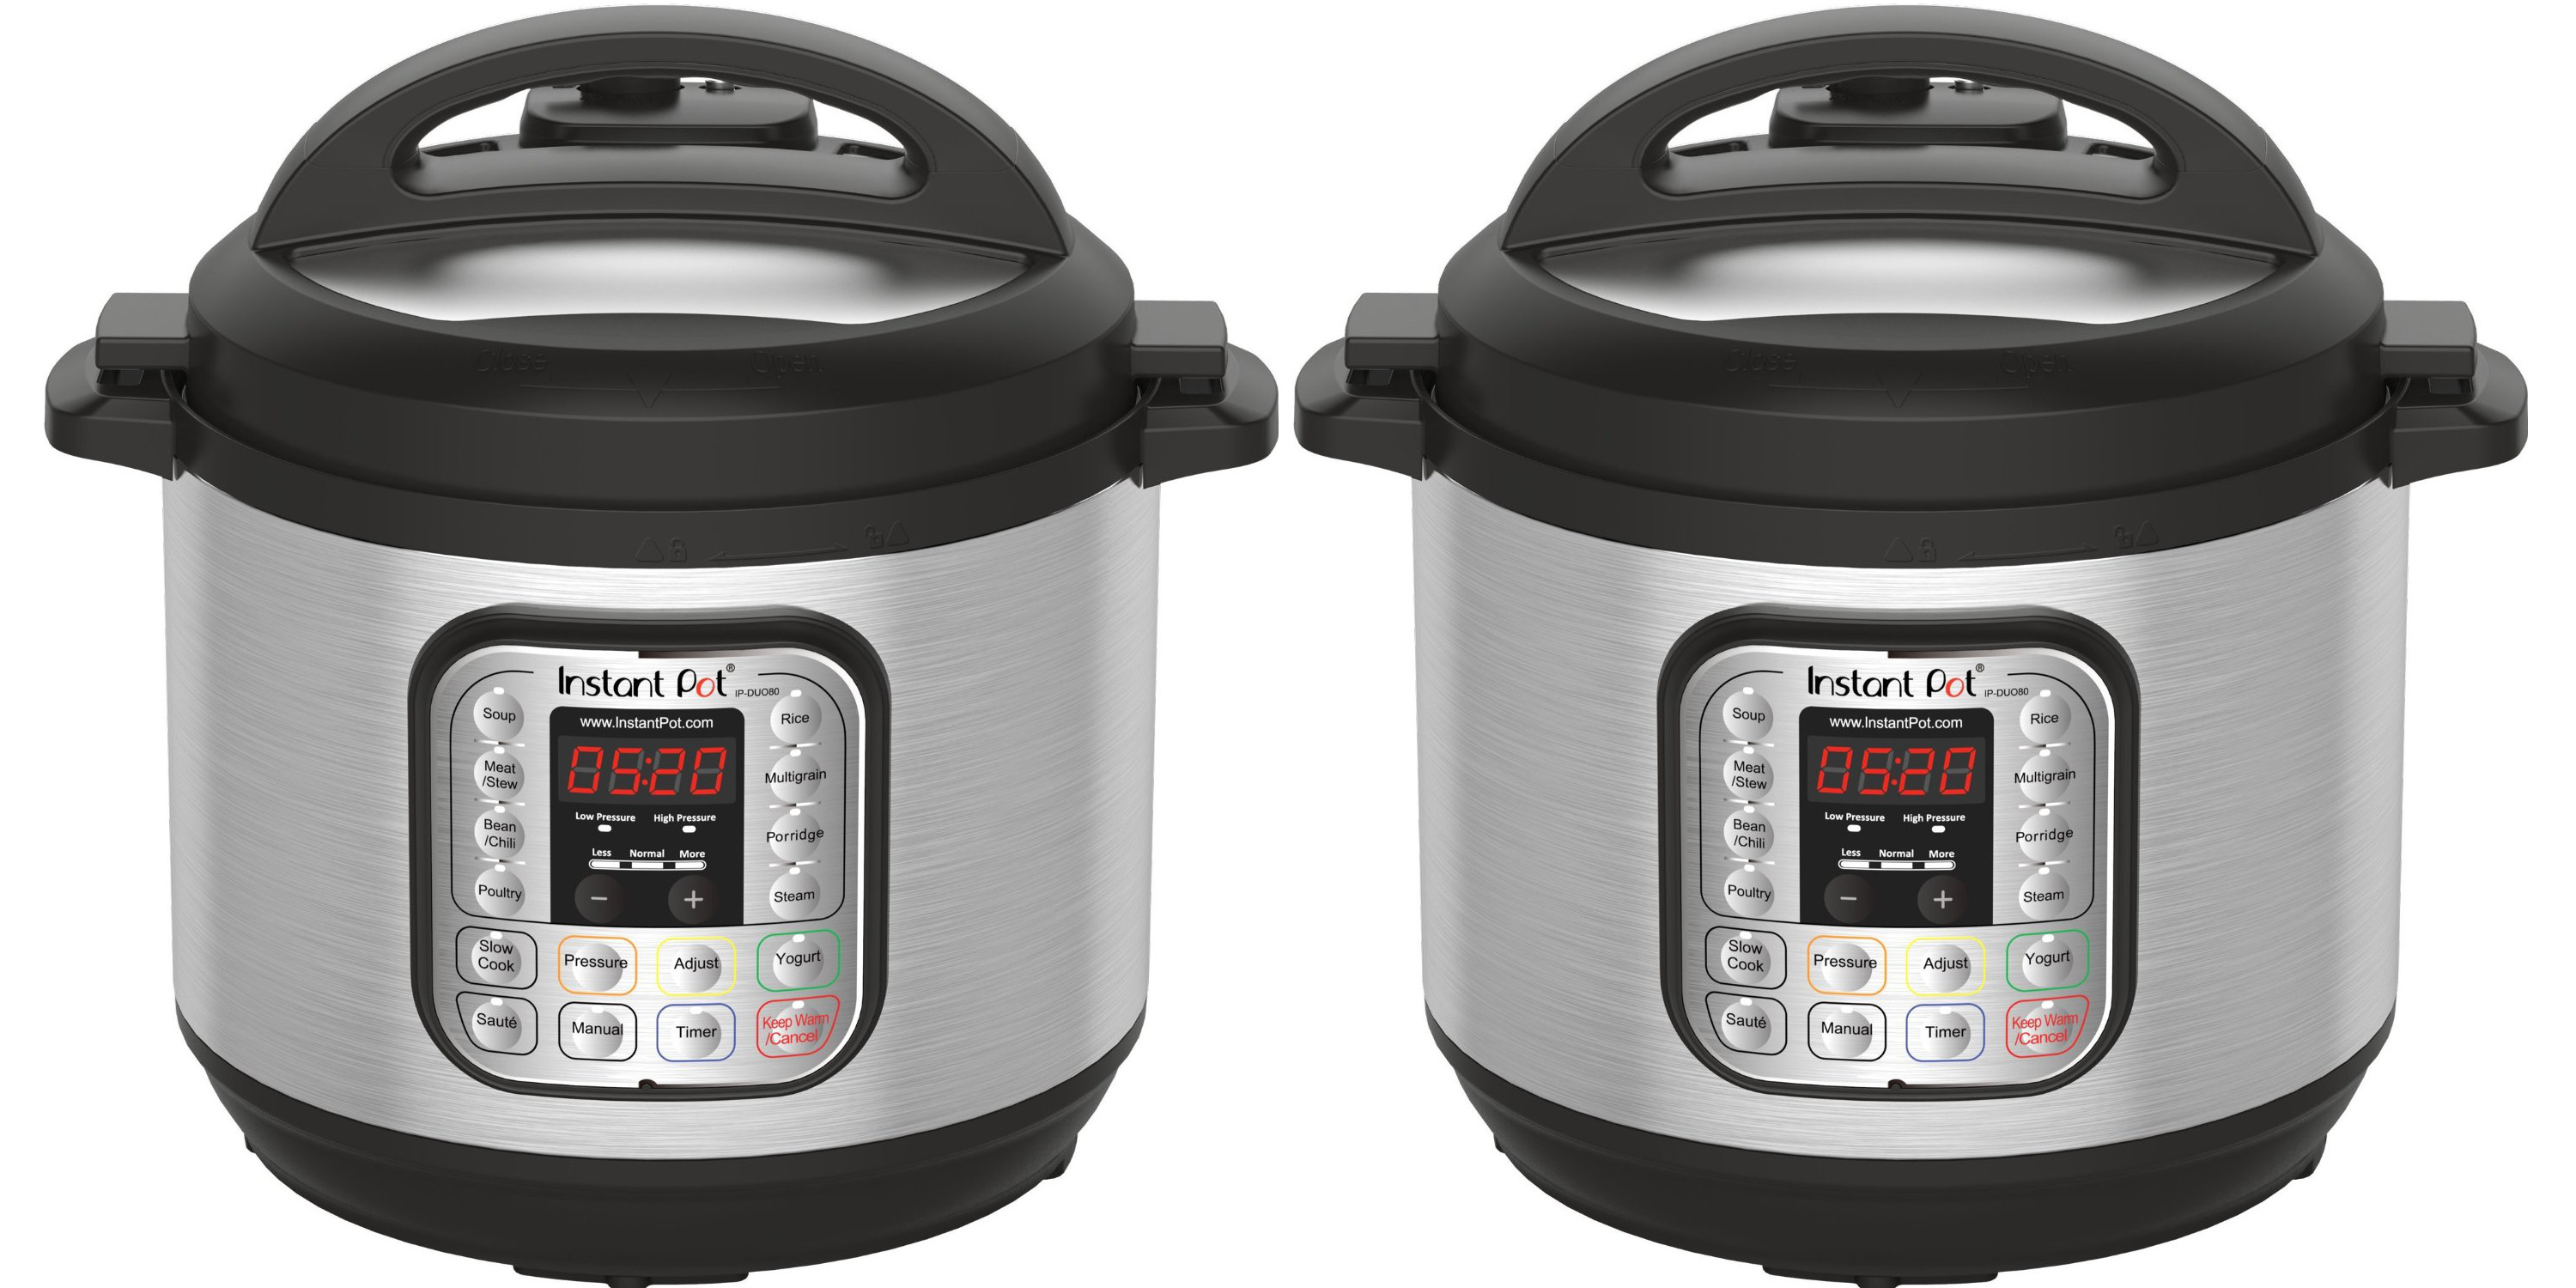 instant-pot-7-in-1-programmable-electric-pressure-cooker-ip-duo80-3